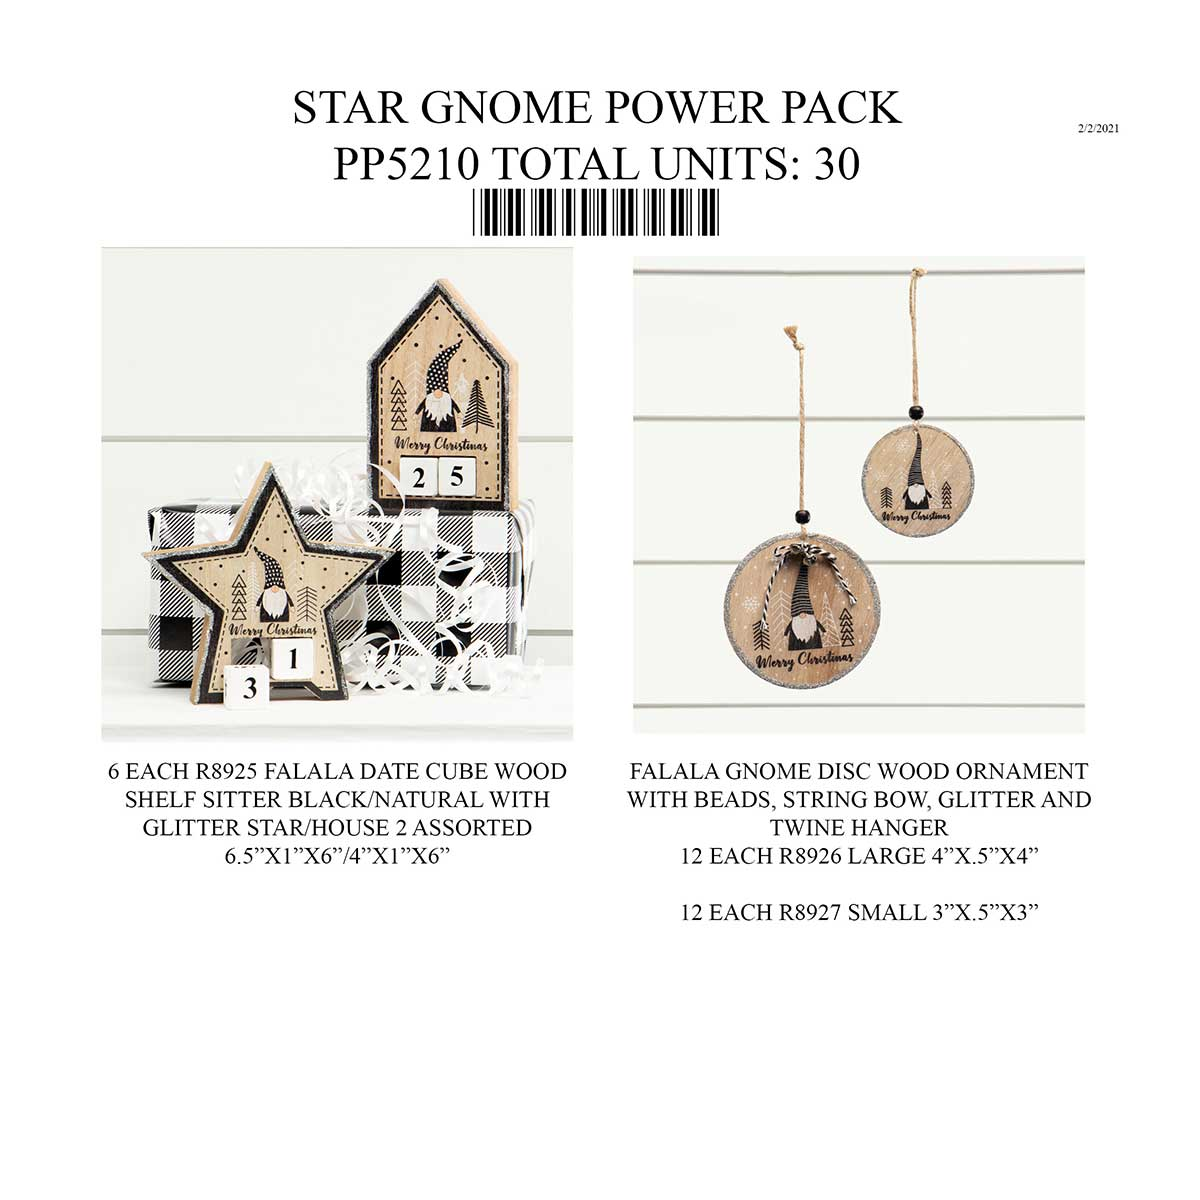 STAR GNOME POWER PACK 30 UNITS PP5210